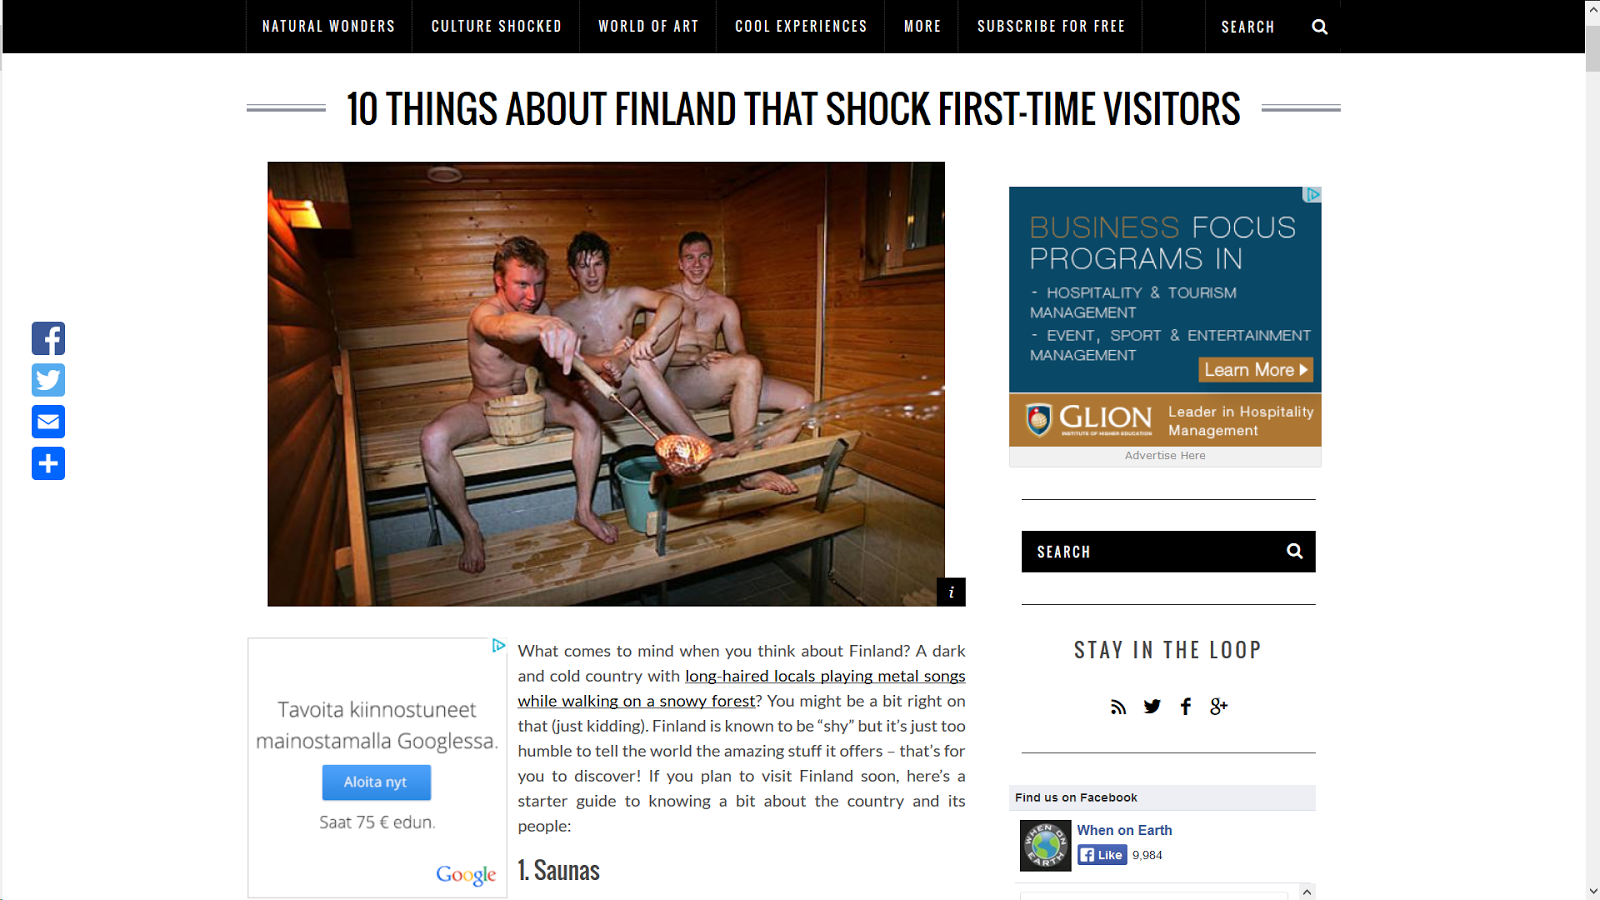 10 things about Finland that shock first-time visitors